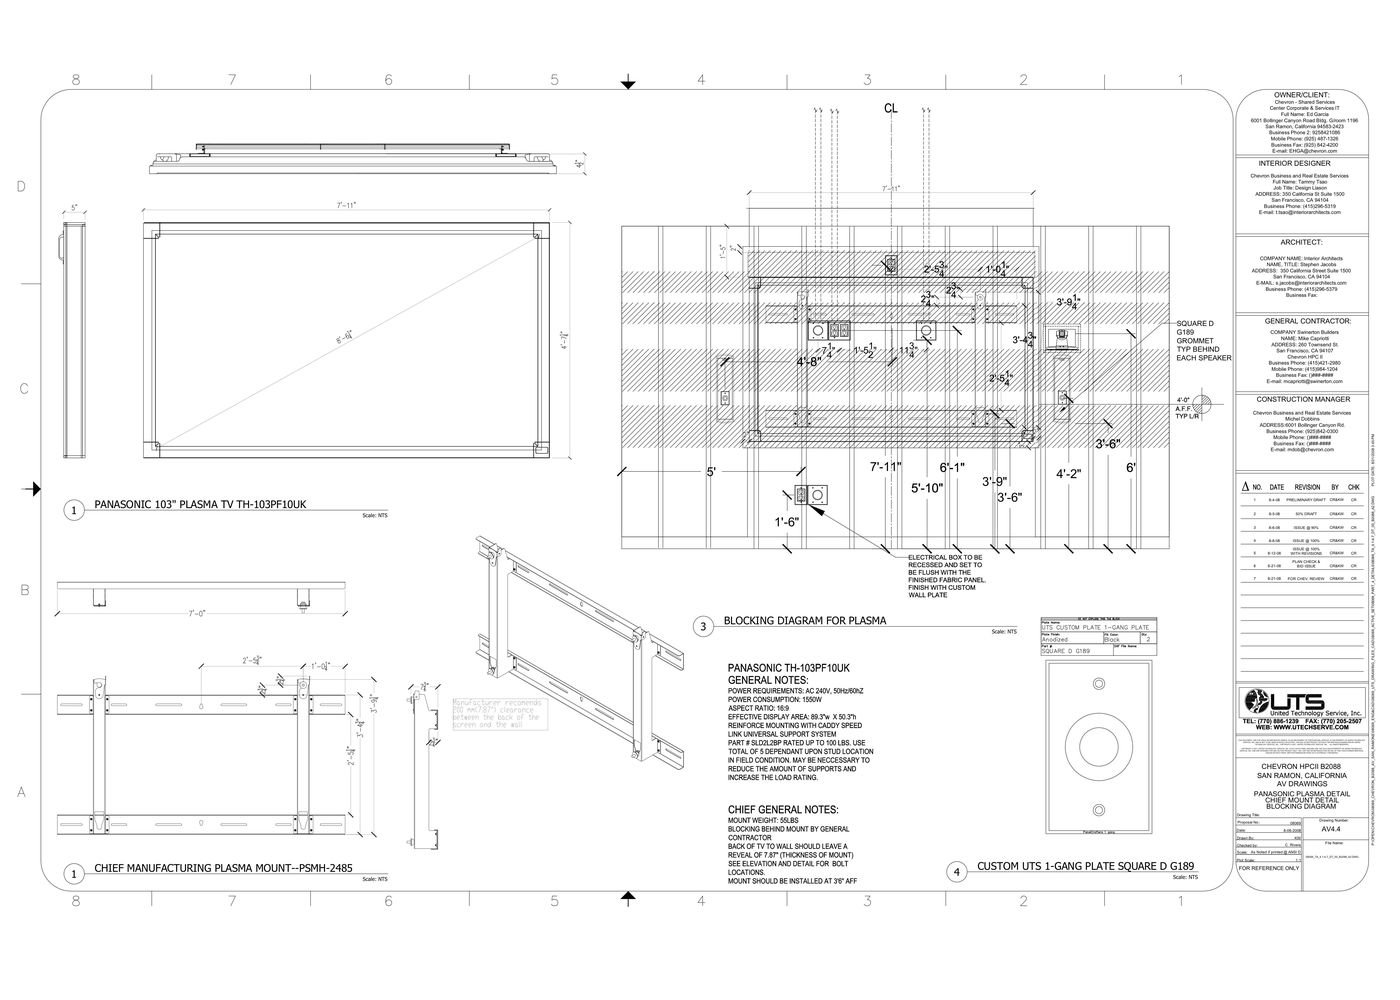 what is a sample space diagram ez go rxv electric wiring av system design vtc executive boardroom by kelly wagnon at coroflot.com